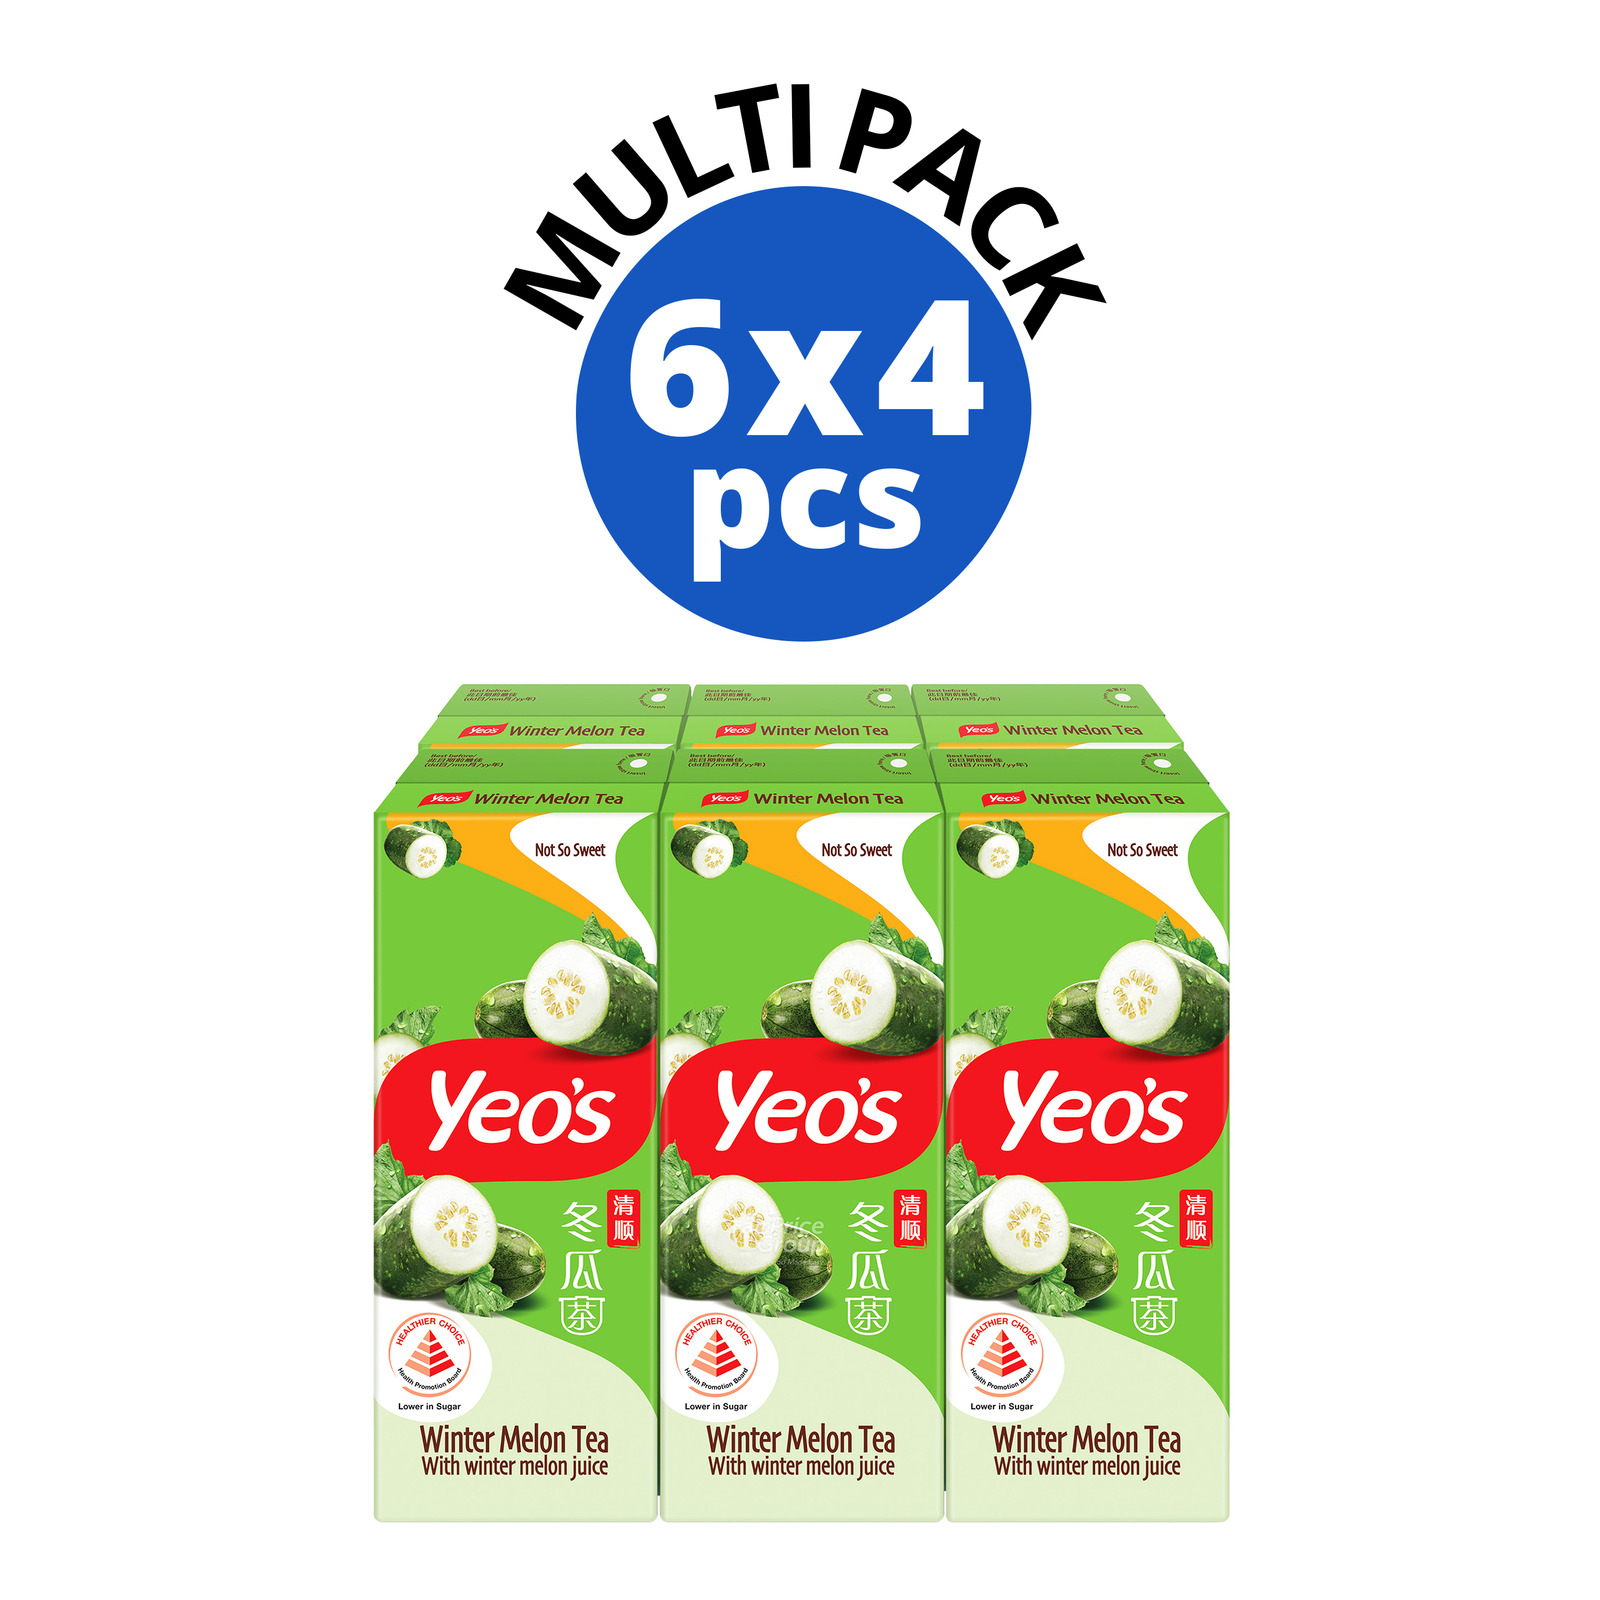 Yeo's Packet Drink - Winter Melon Tea